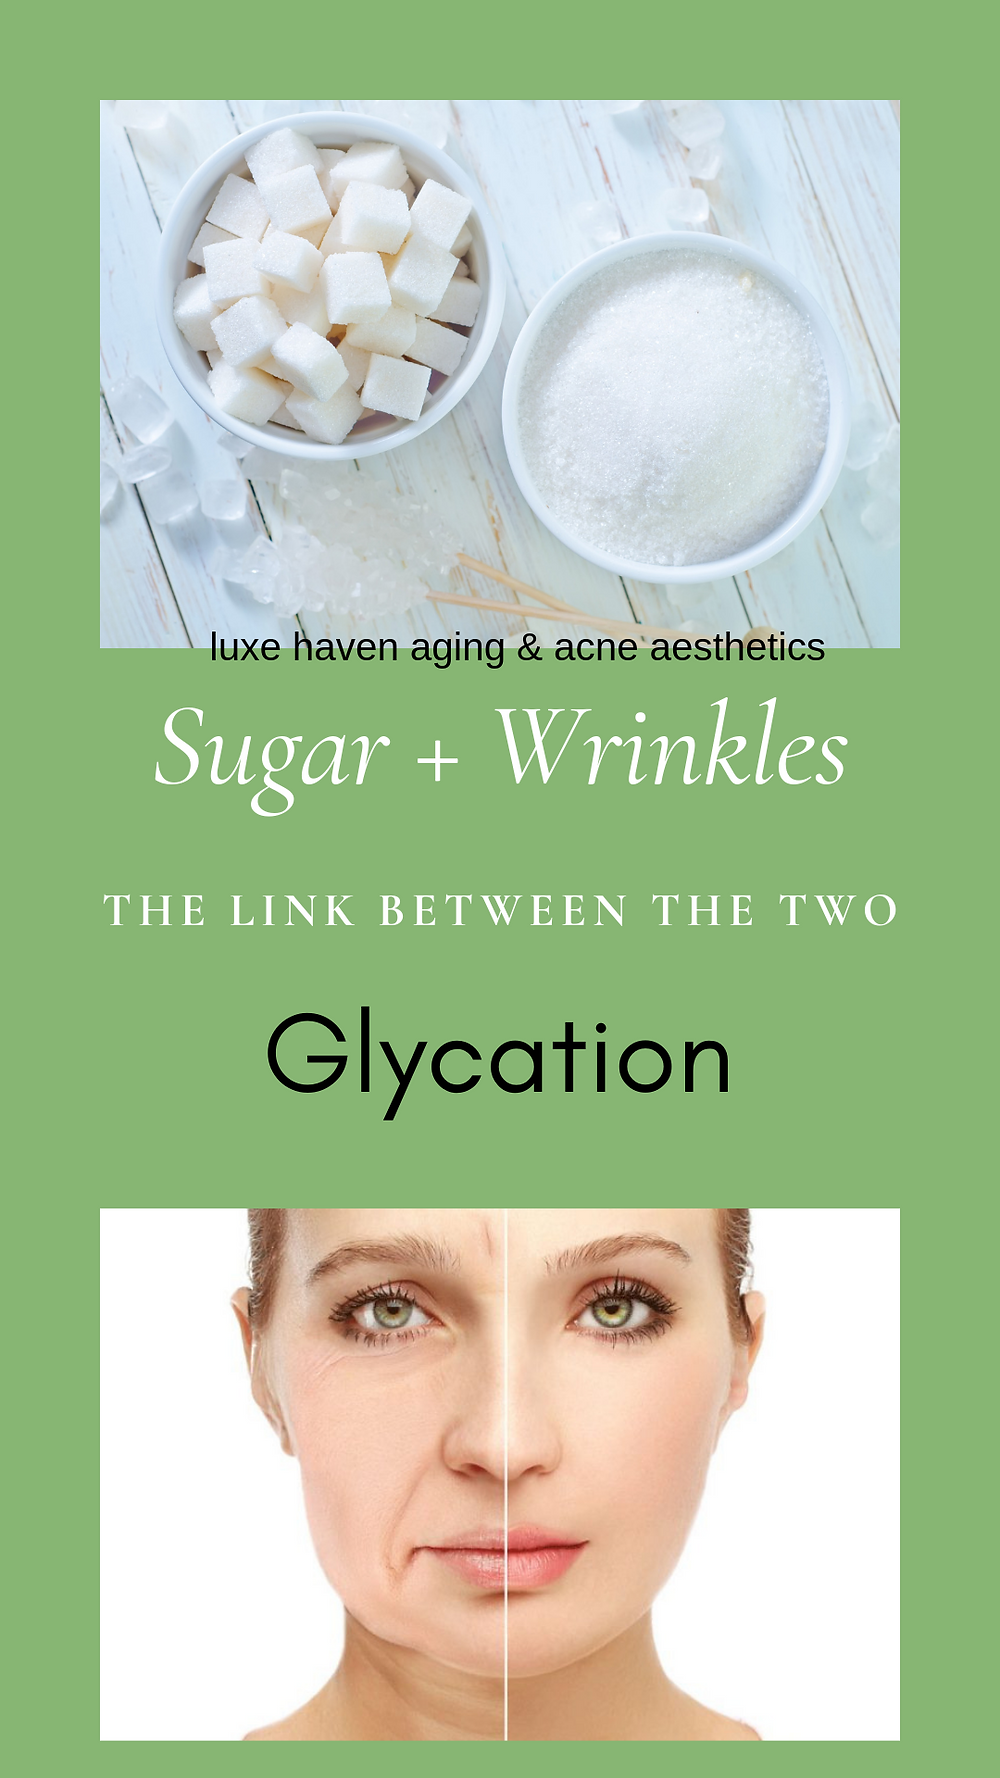 Glycation aging